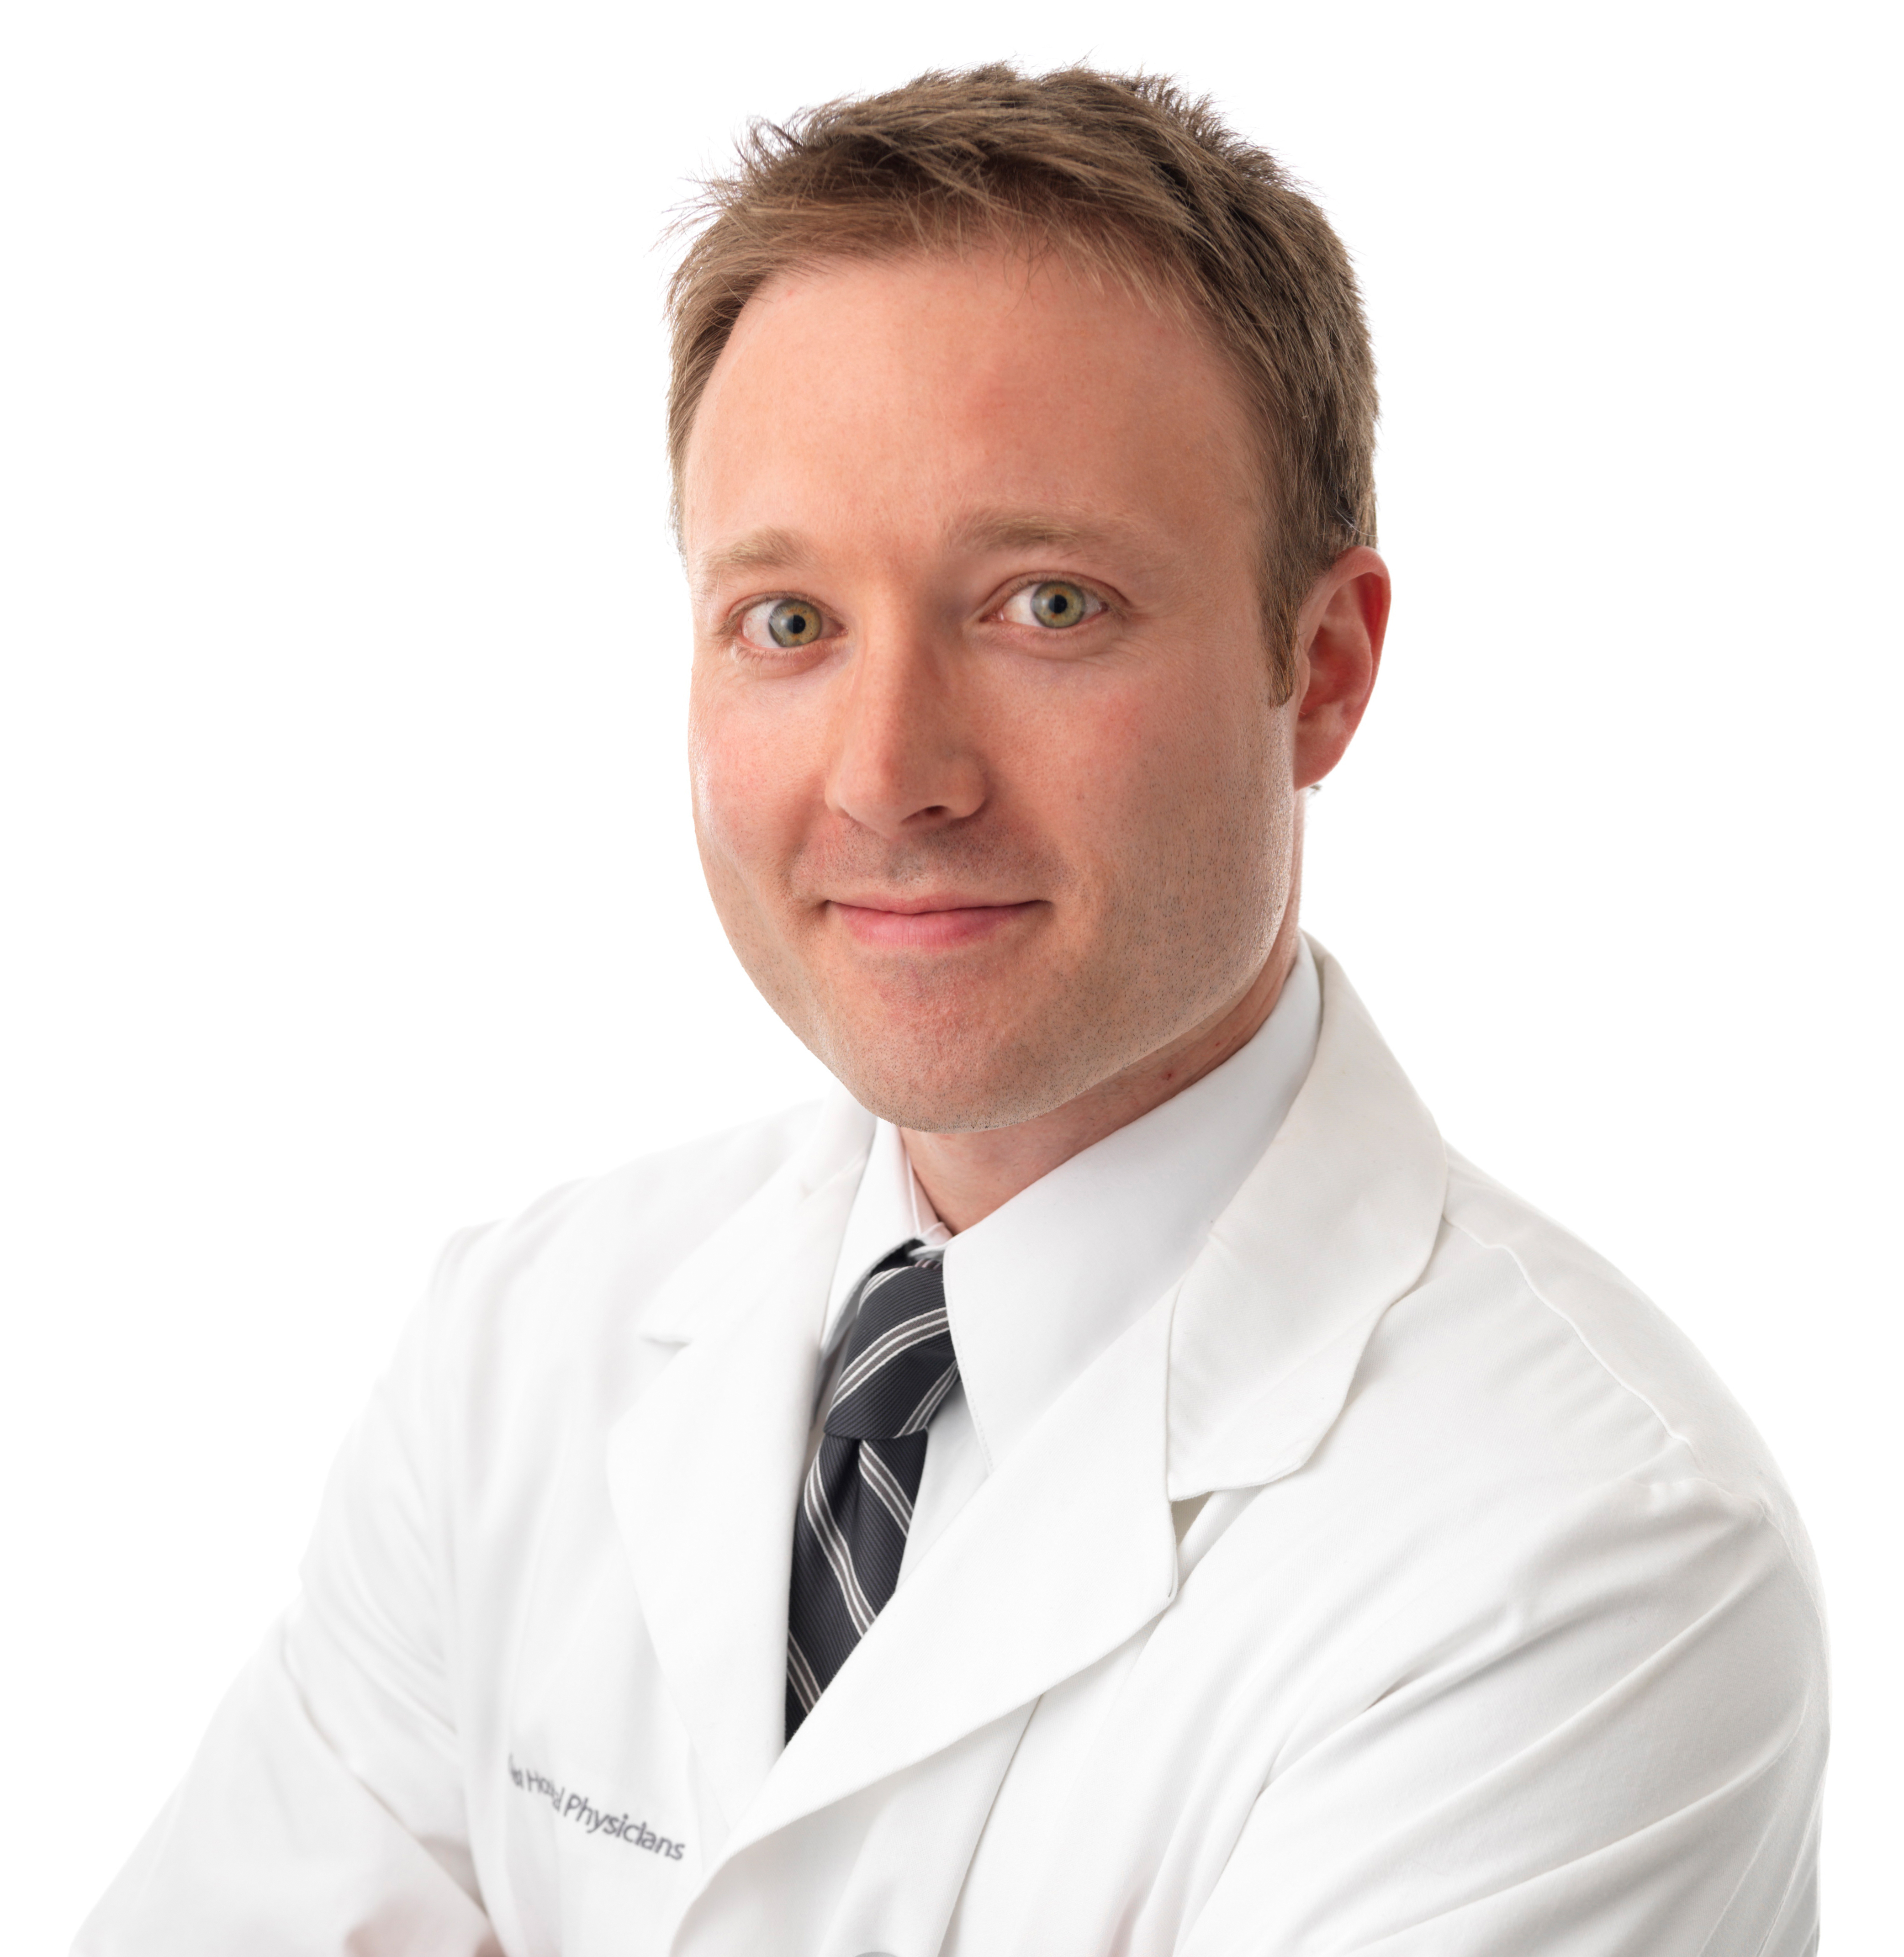 Foot Doctor Q&A with Dr. Adam Miller